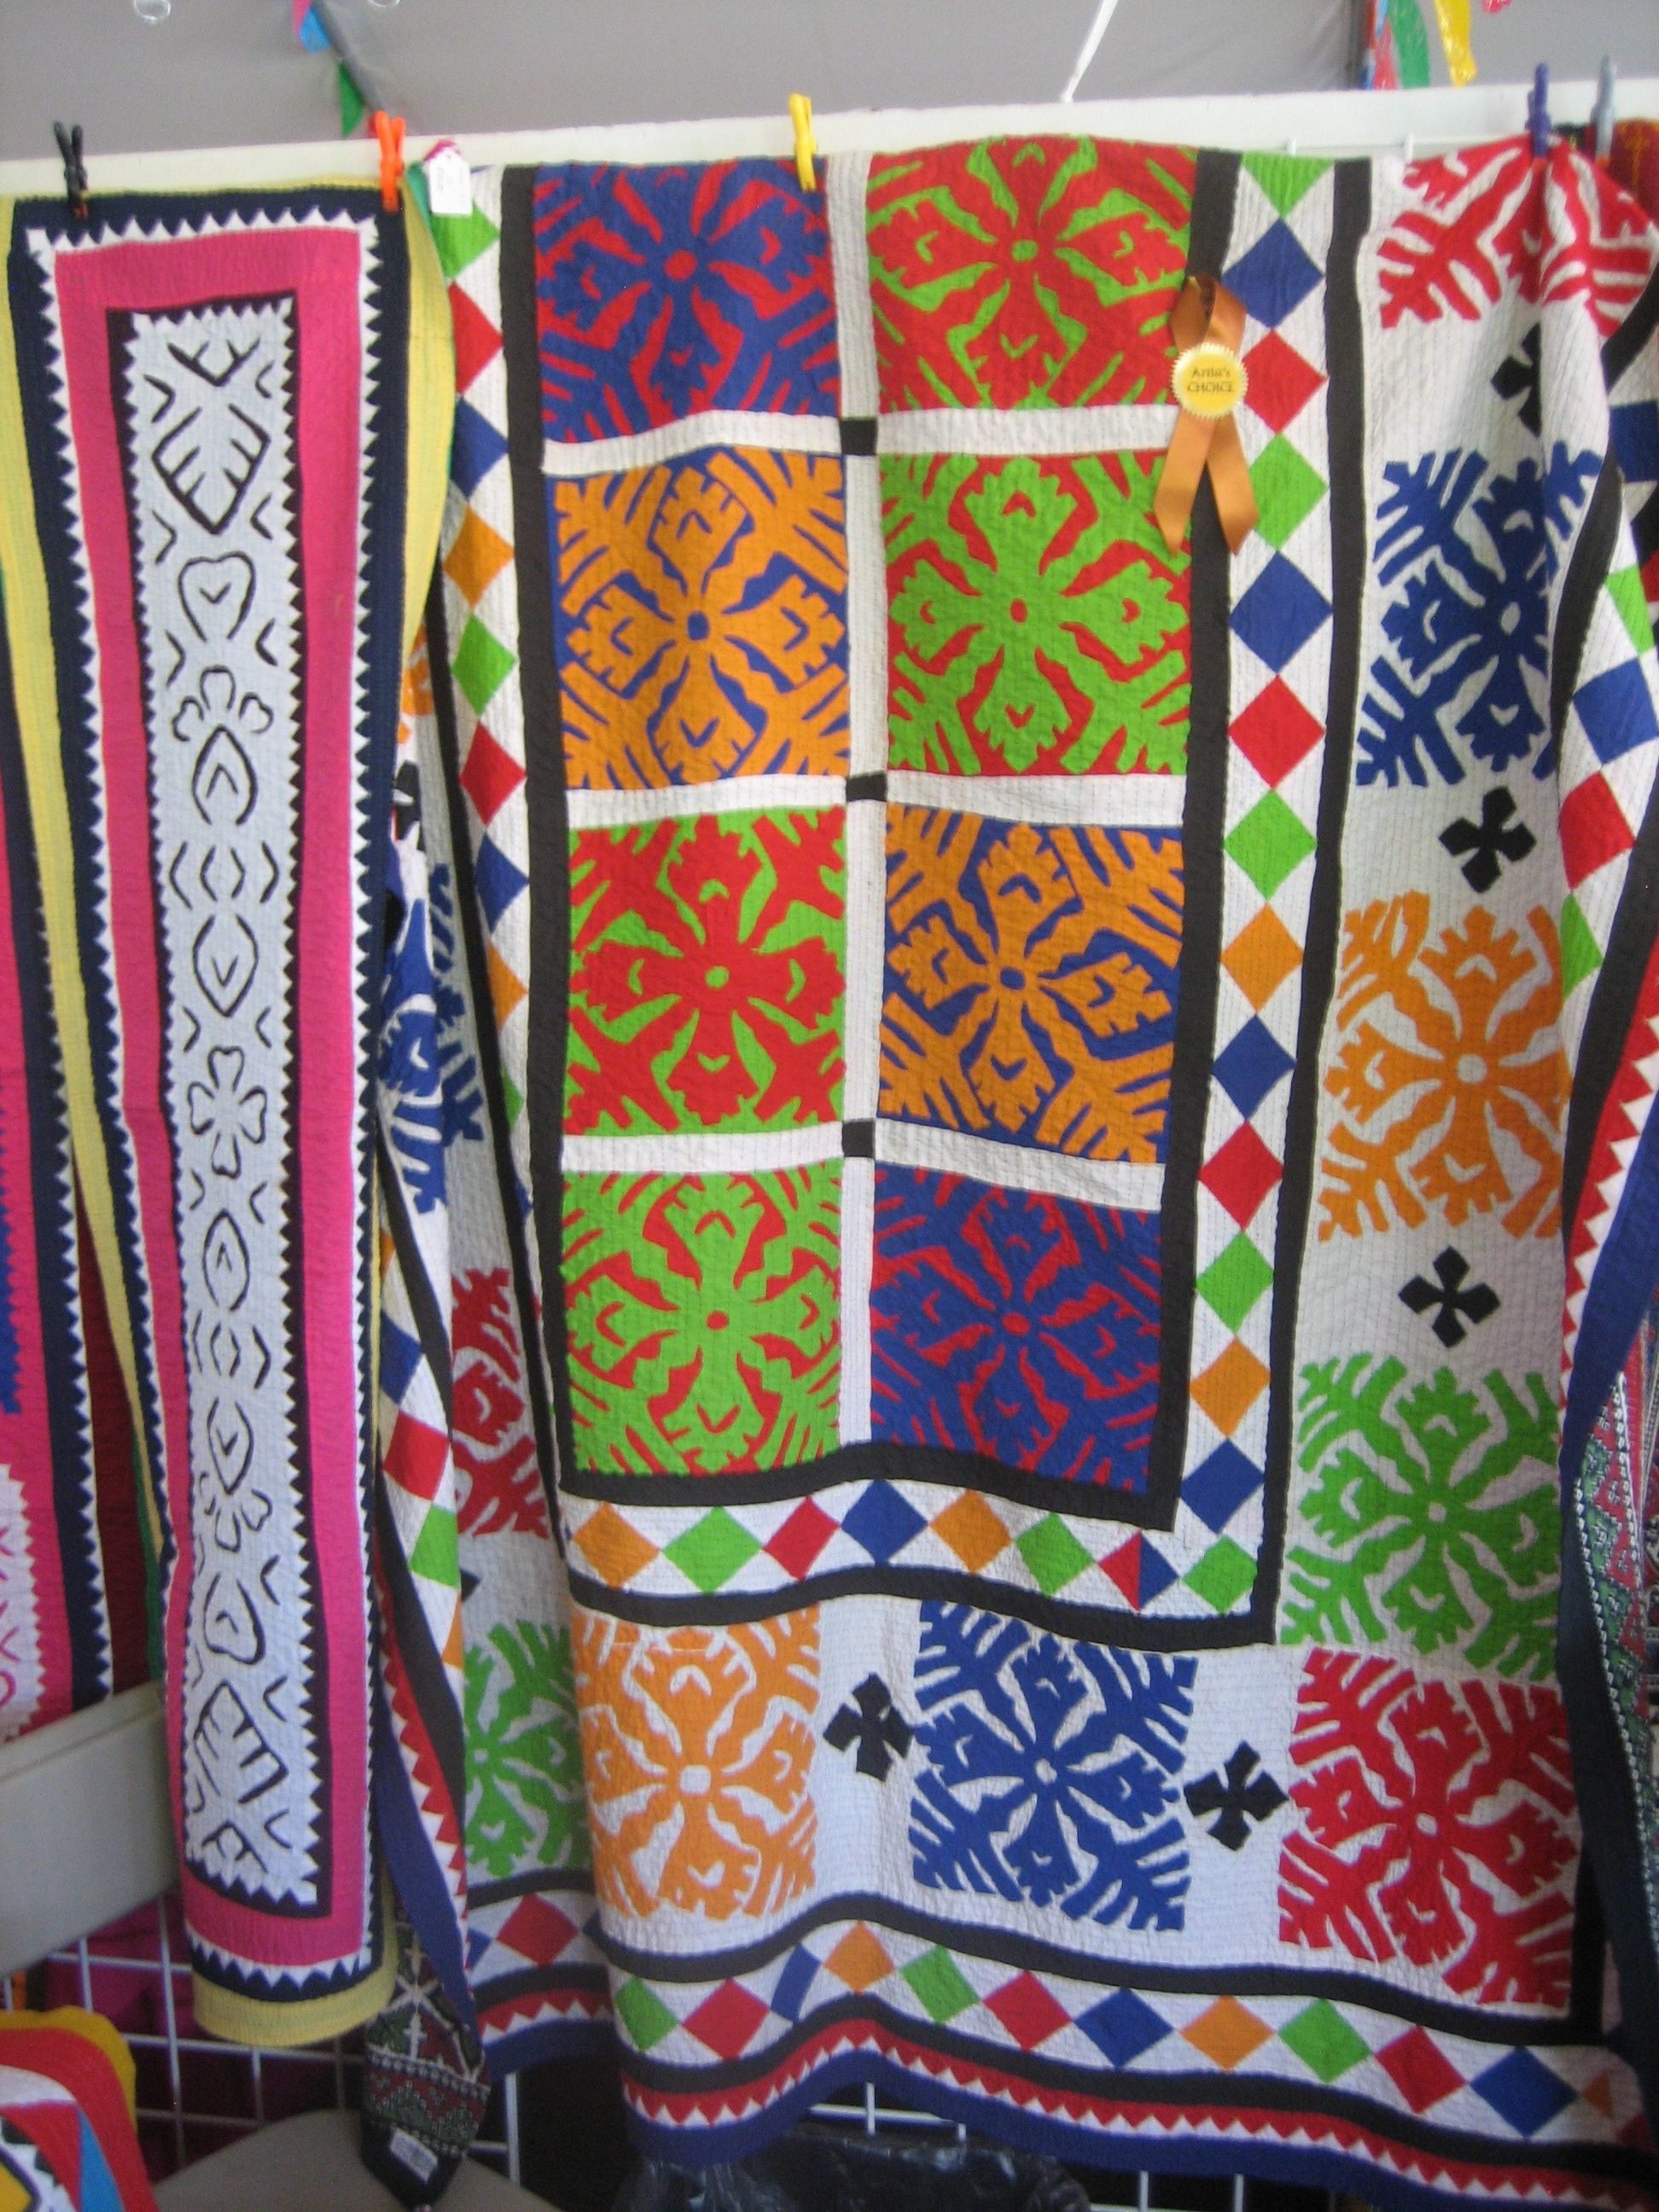 Pakistani Quilt At Santa Fe International Craft Fair Socialgood Art Aplike